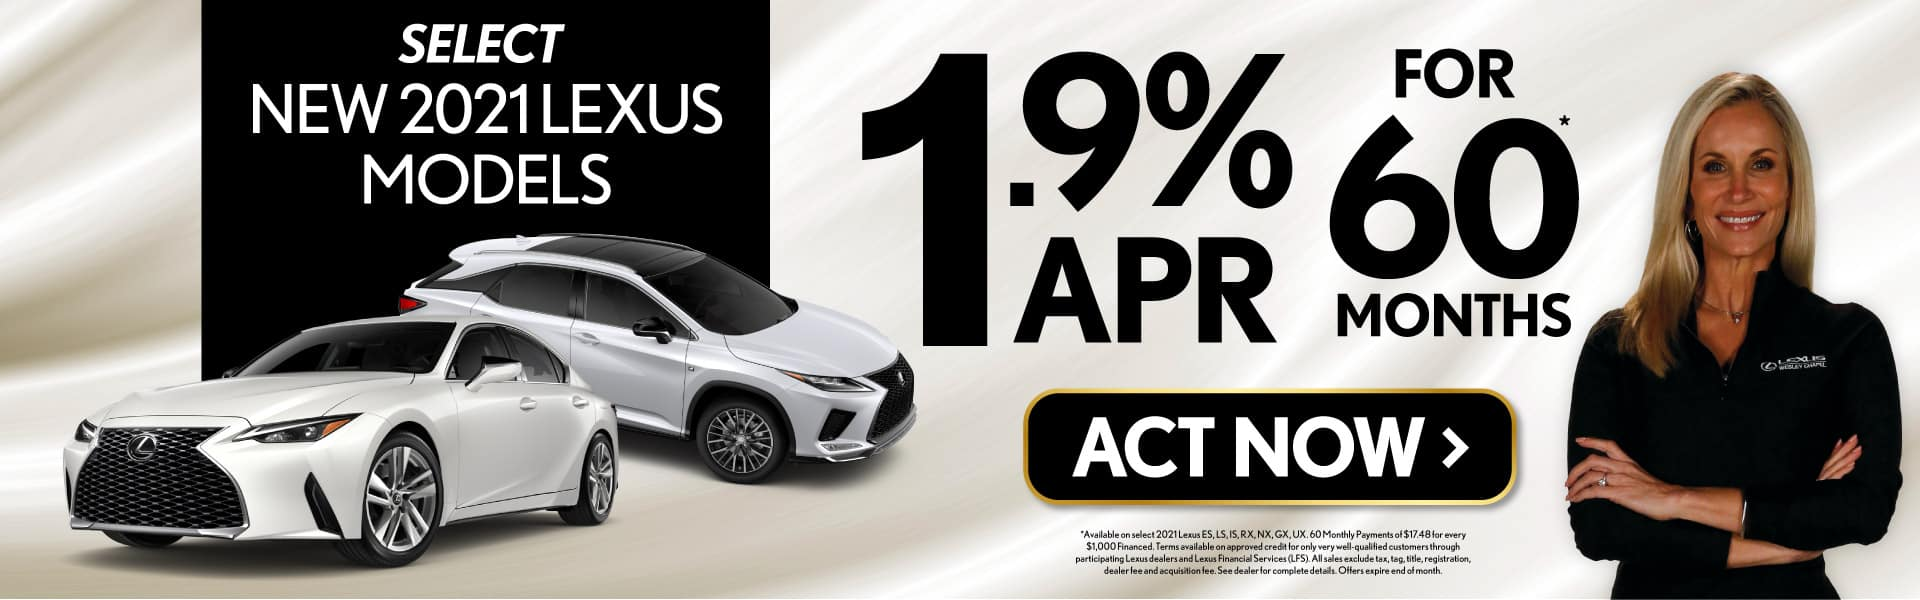 Select New 2021 Lexus Models 1.9% APR for 60 Months - ACT NOW